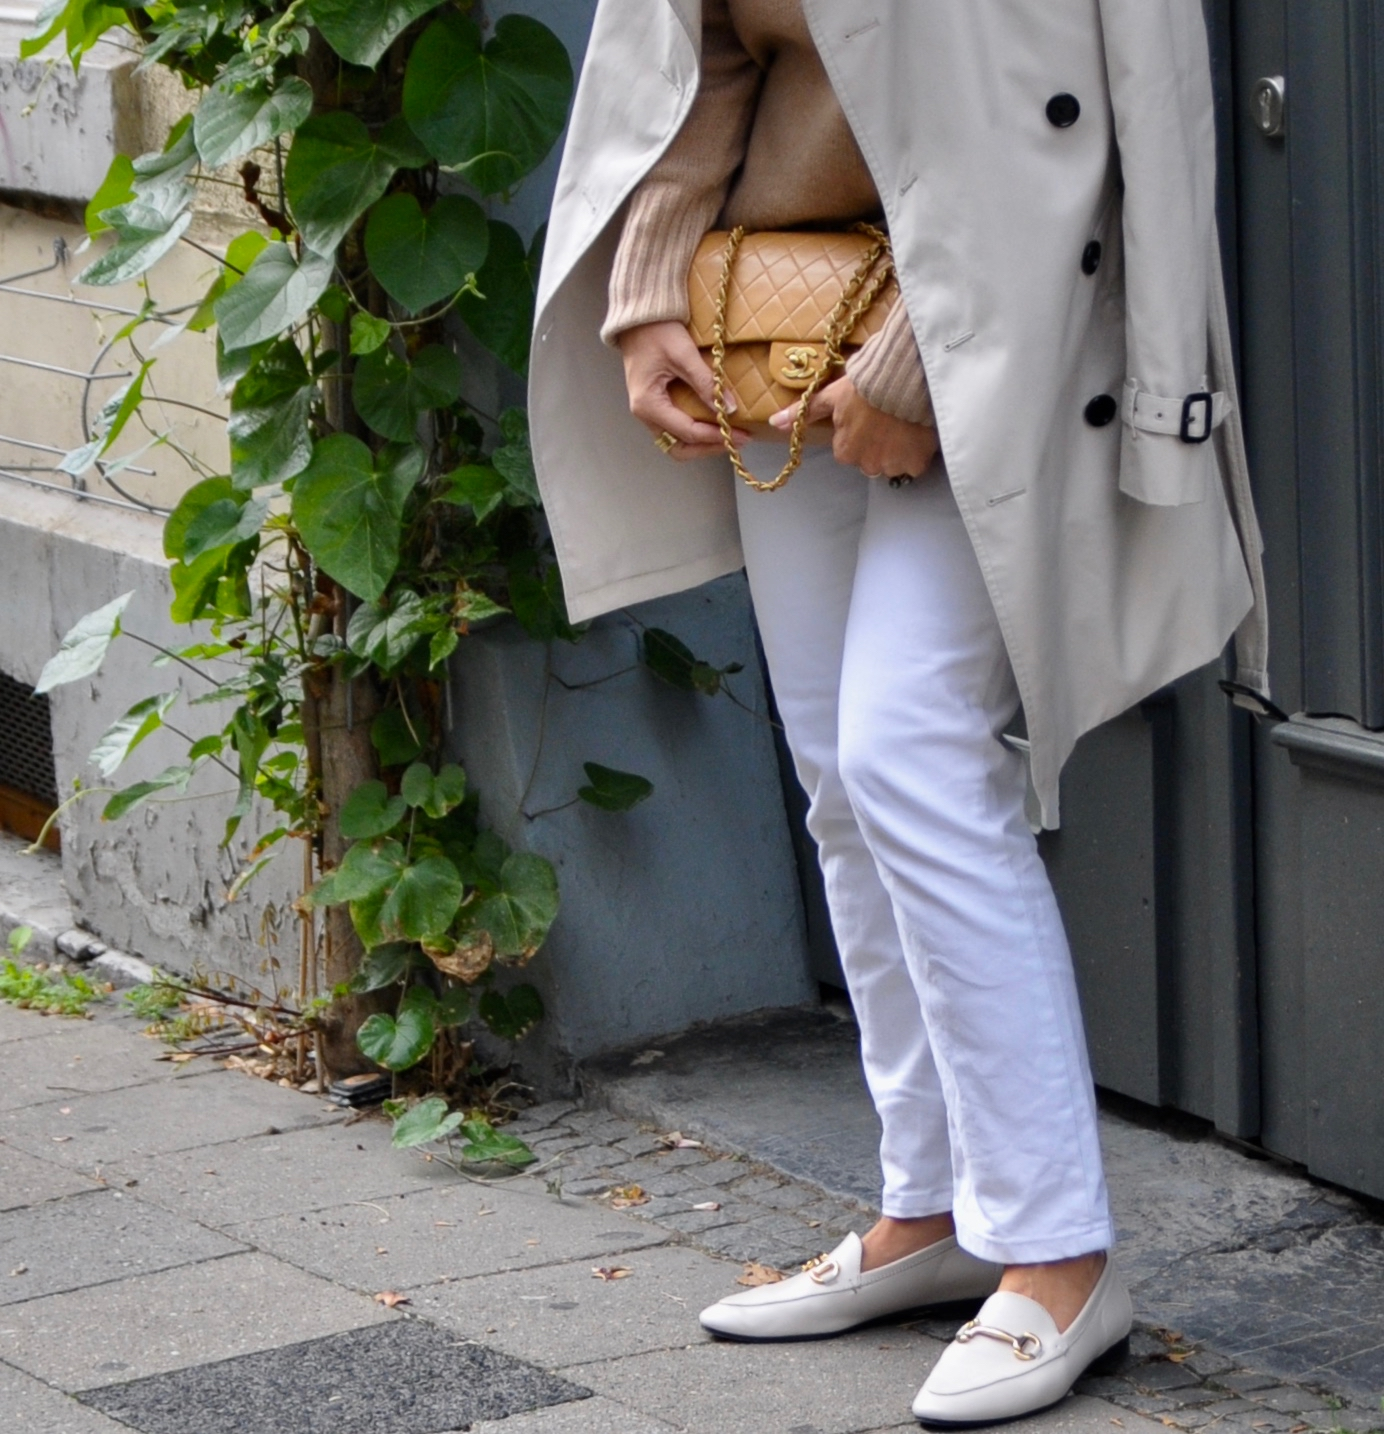 Oversized Rollkragenpullover und Chanel bag - claudinesroom